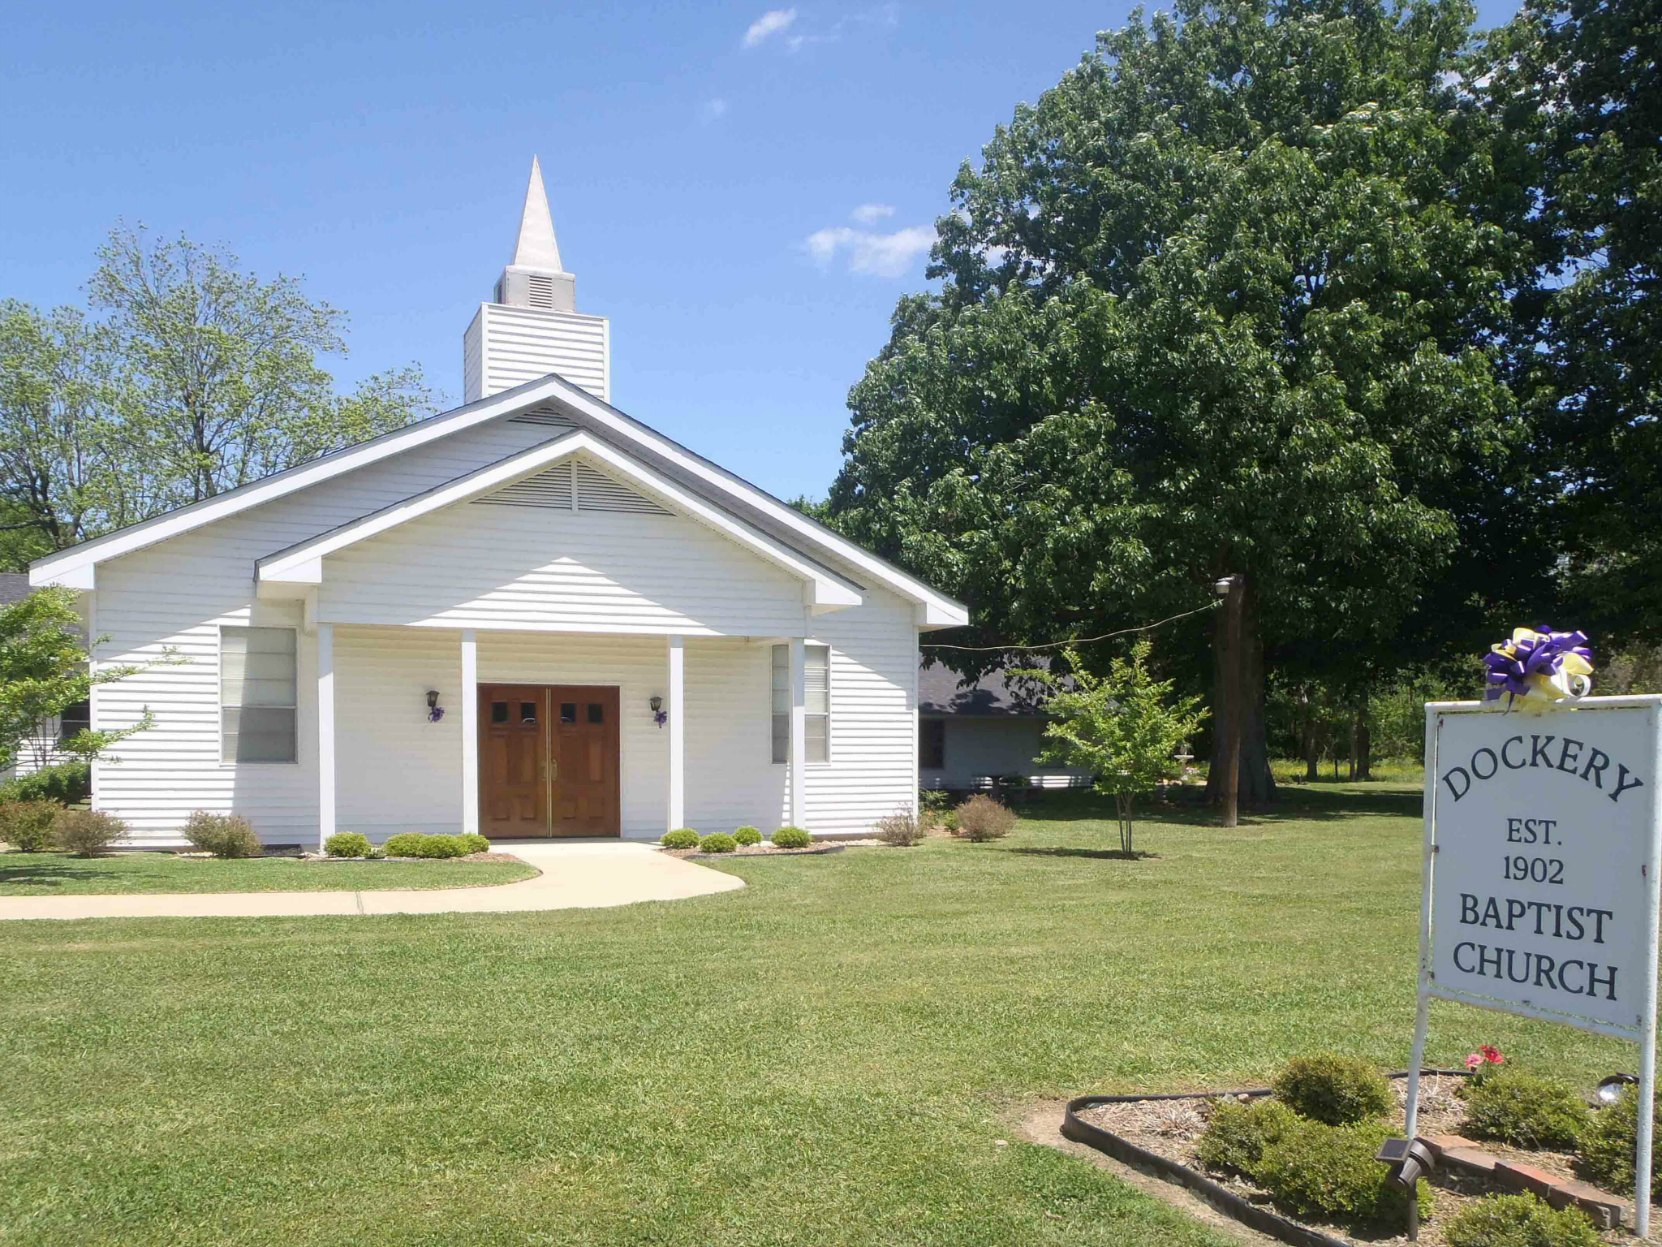 The Dockery Baptist Church, Dockery Farms, Highway 8, Sunflower County, Mississippi